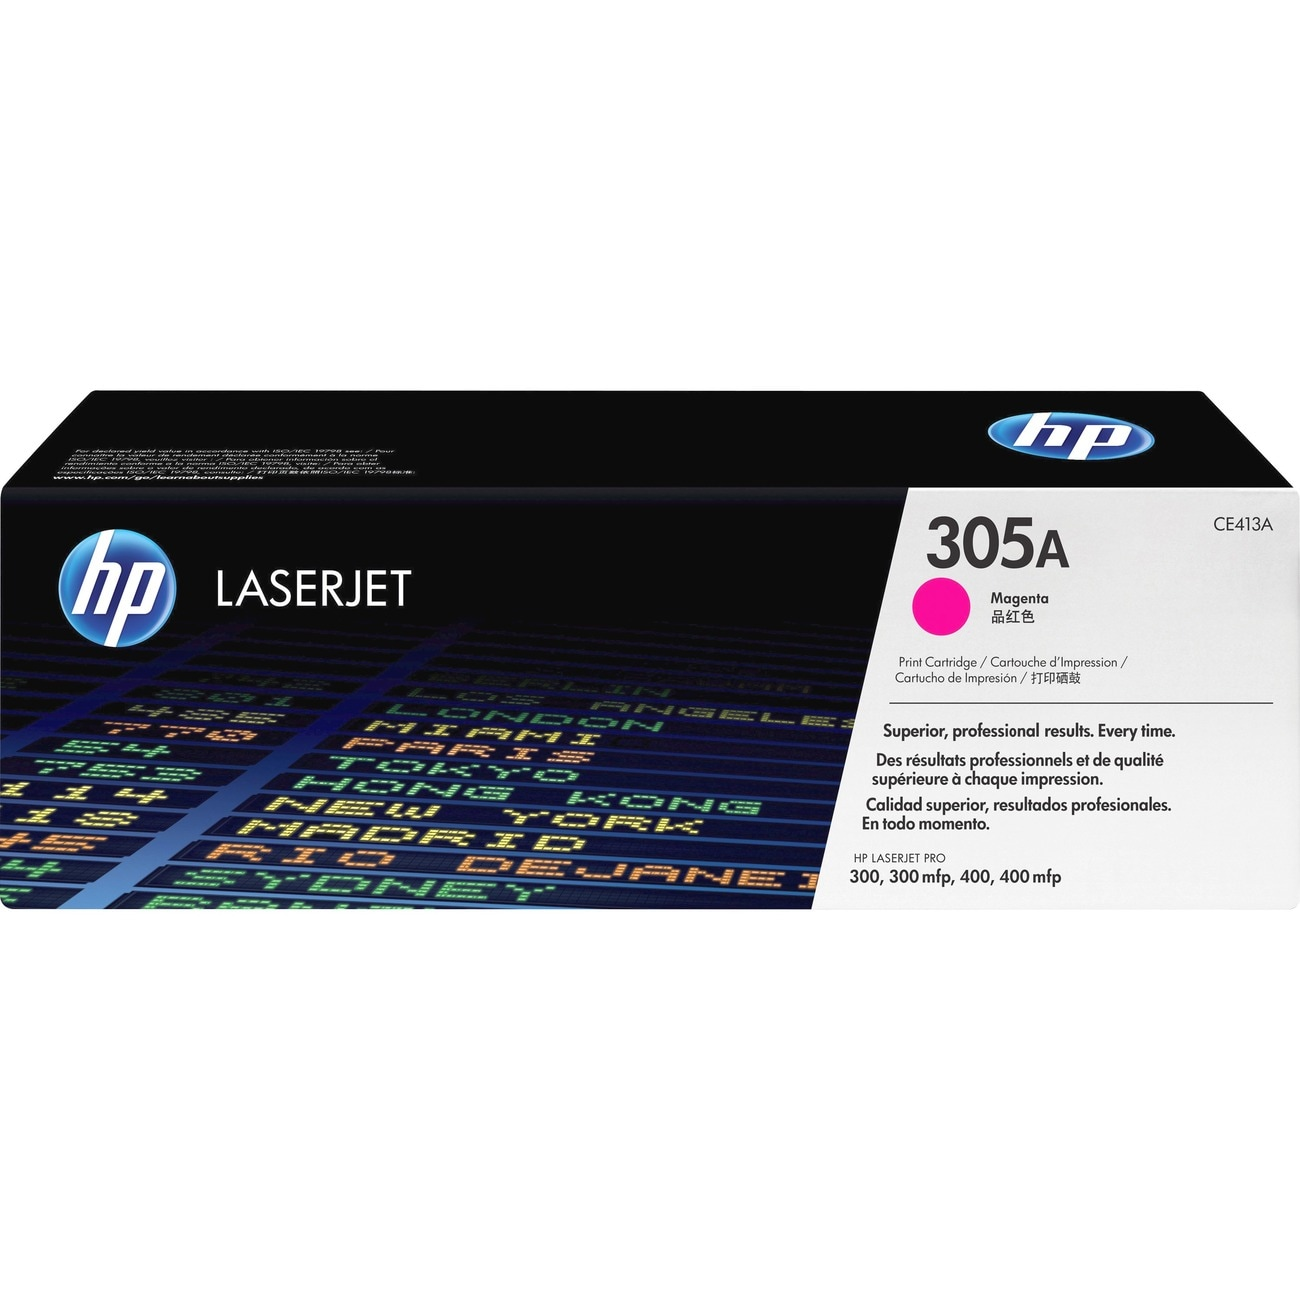 HP 305A Magenta Toner Cartridge for HP LaserJet Pro Printers - Thumbnail 0